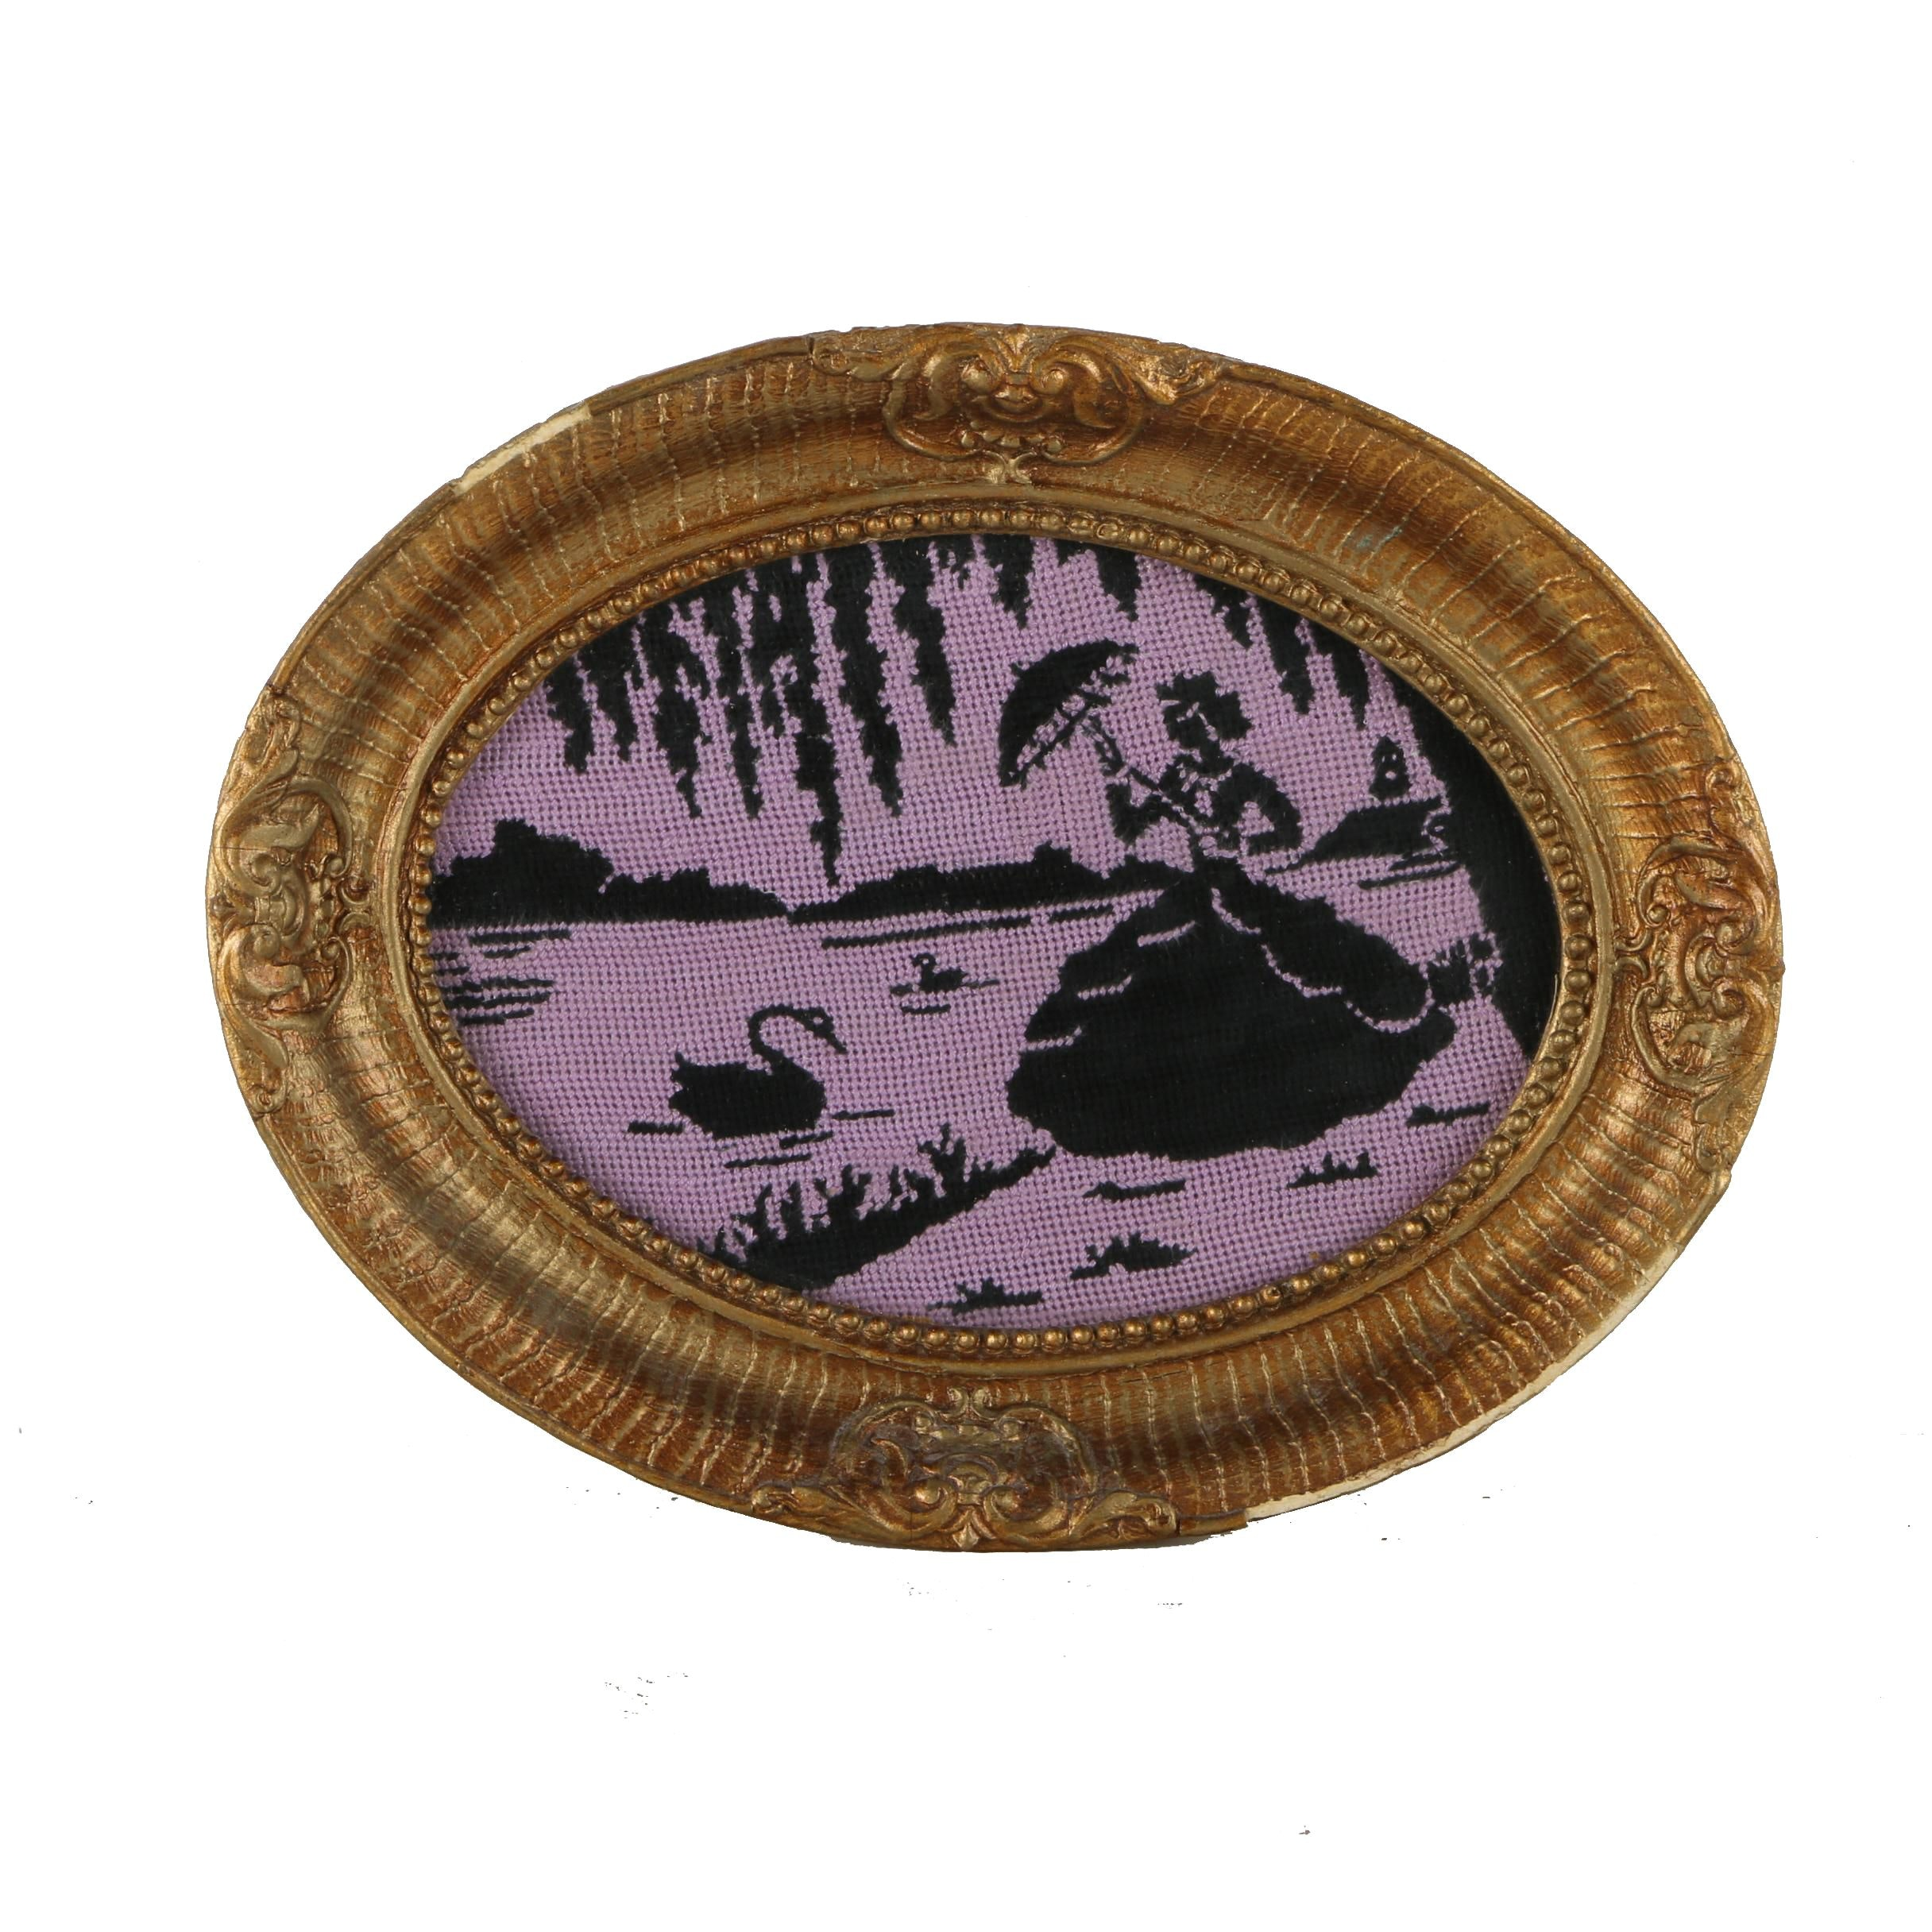 Needlepoint Picture of a Woman Beside a Lake